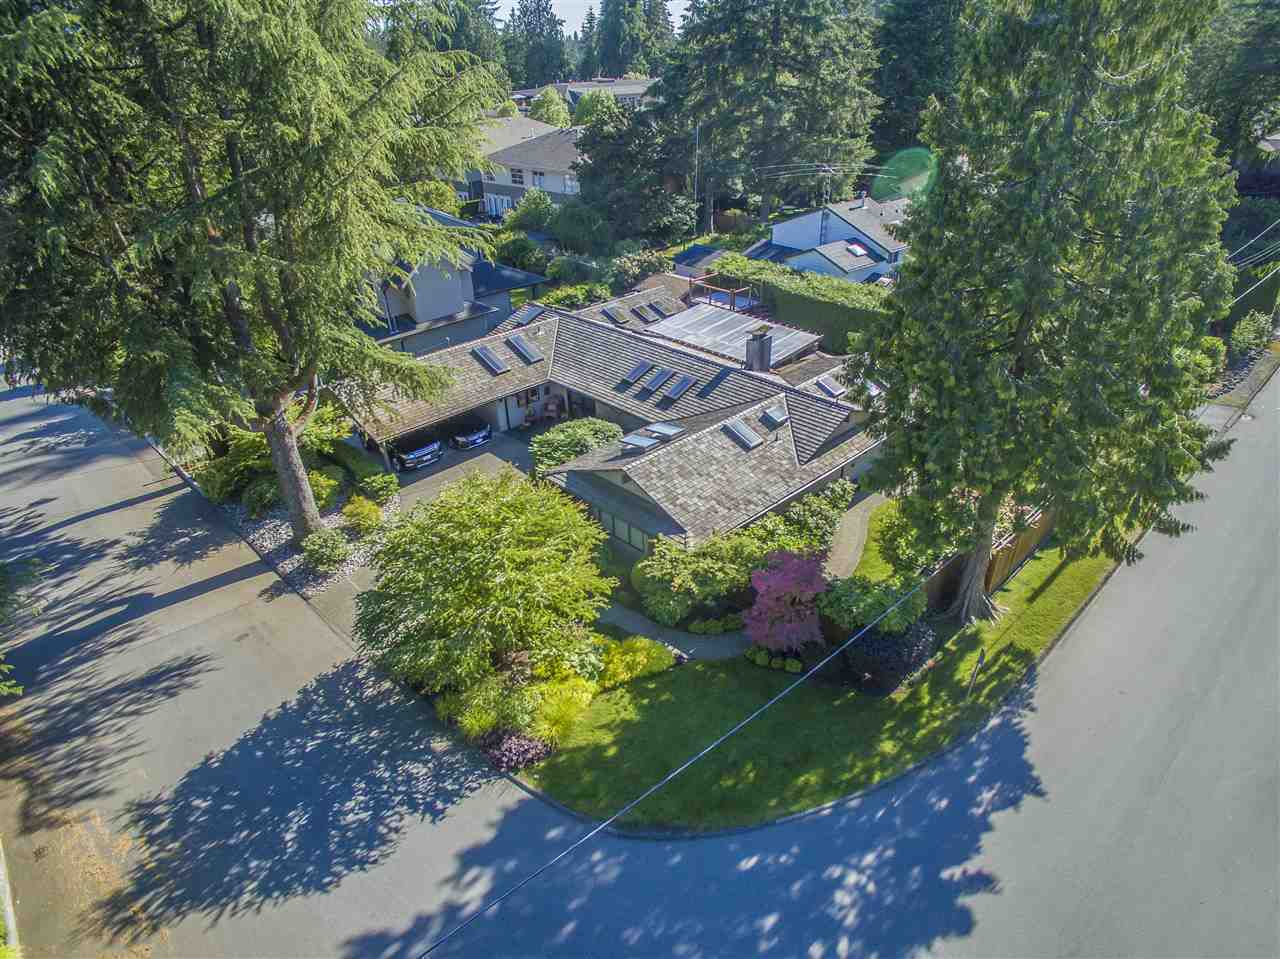 3977-lewister-road-edgemont-north-vancouver-01 at 3977 Lewister Road, Edgemont, North Vancouver